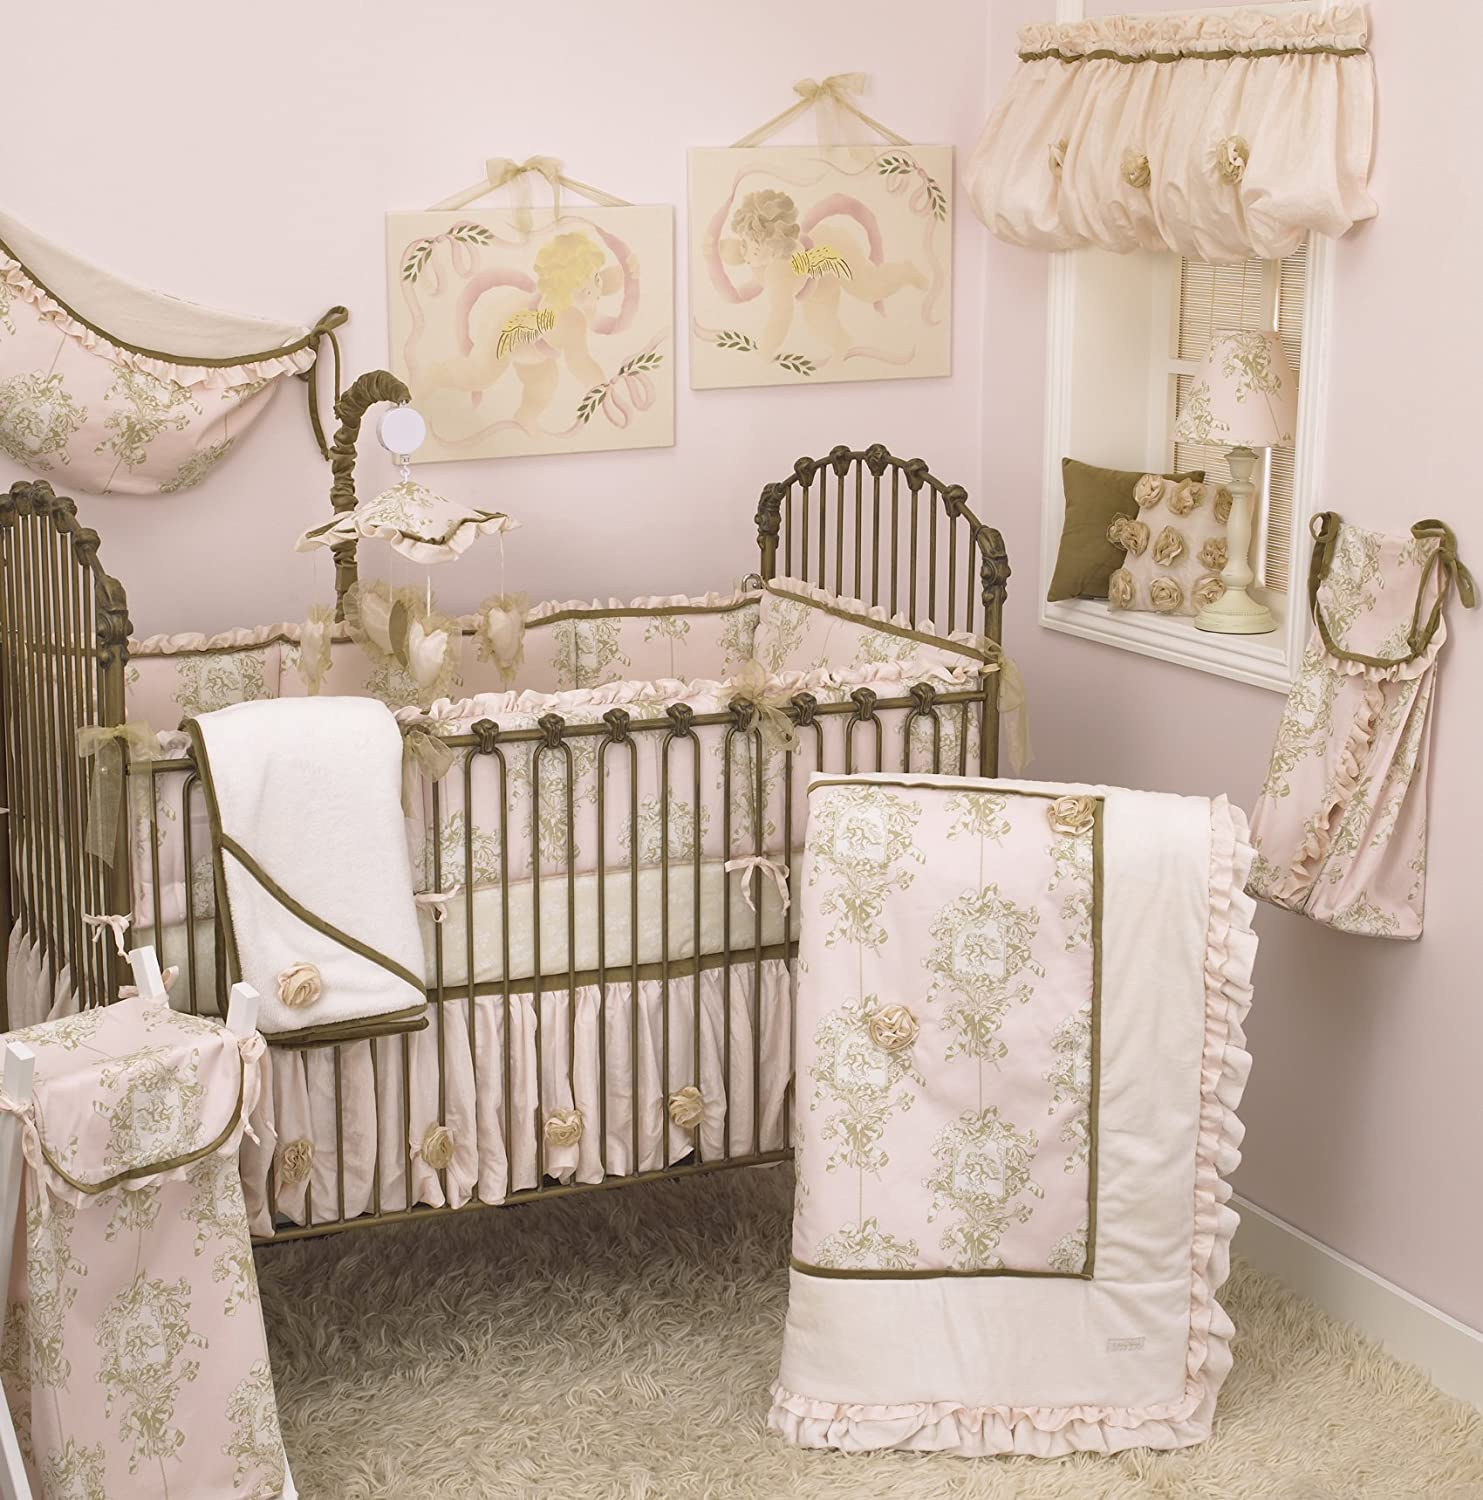 Design Baby Bed Set amazon com cotton tale designs lollipops and roses 8 piece crib bedding set baby